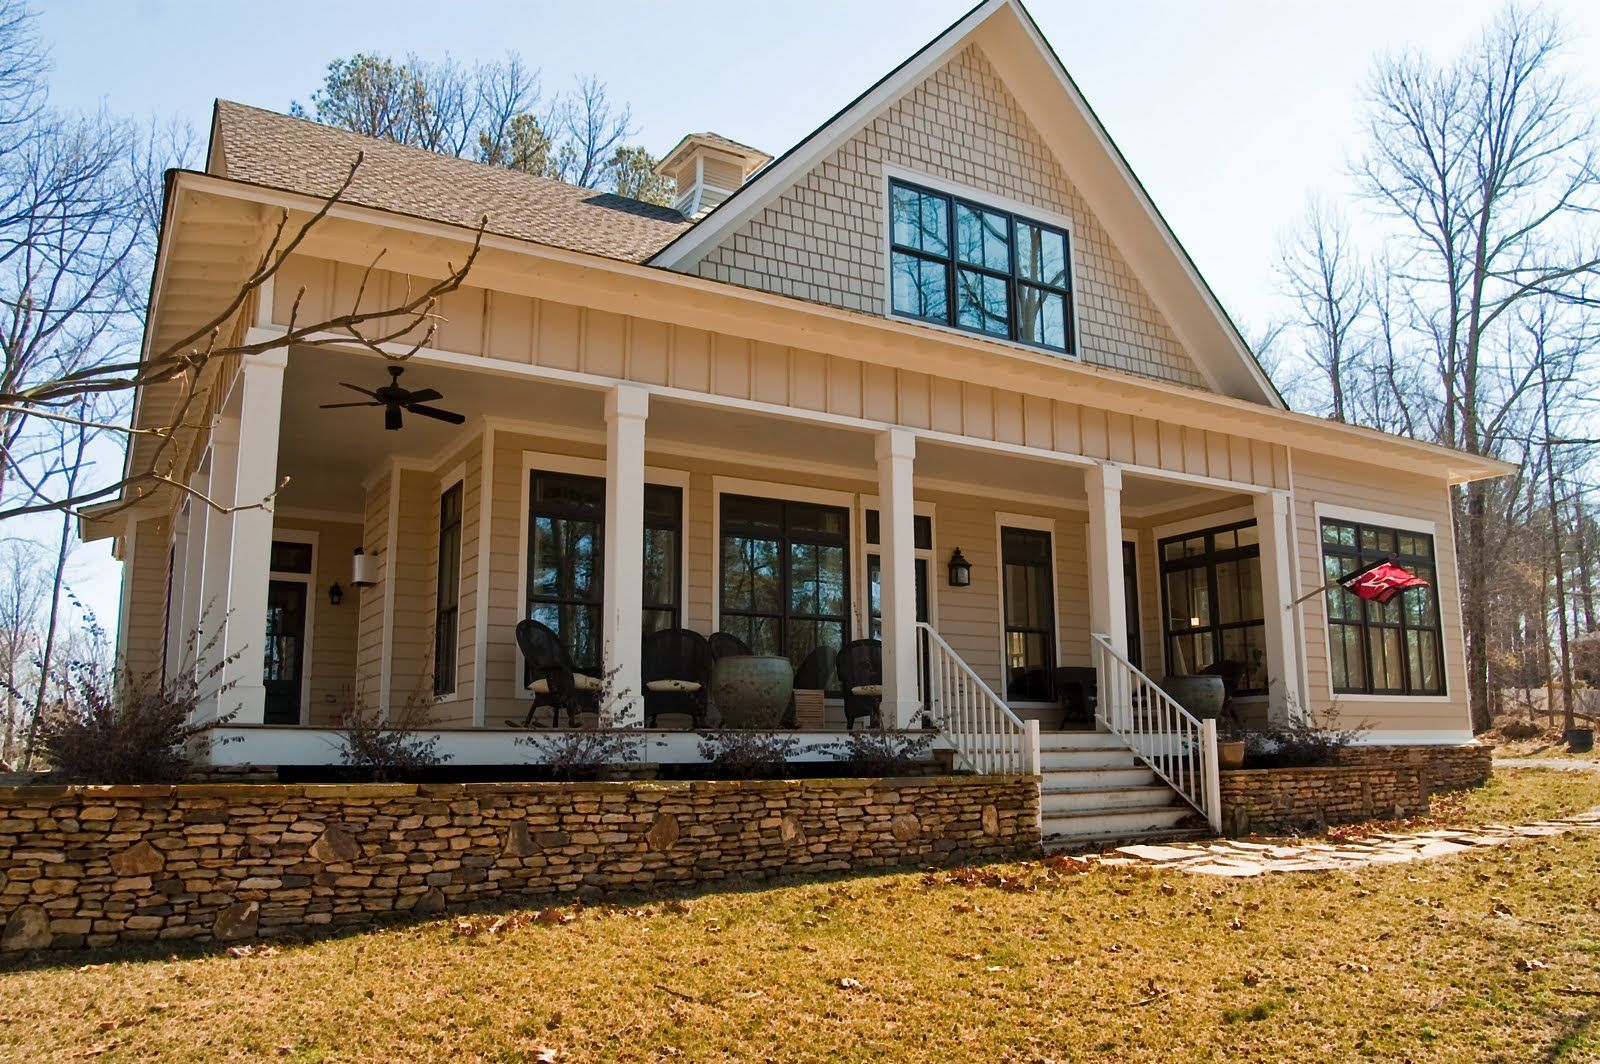 Southern Style House Plans With Wrap Around Porches Southern House Plans House Plans Farmhouse Porch House Plans